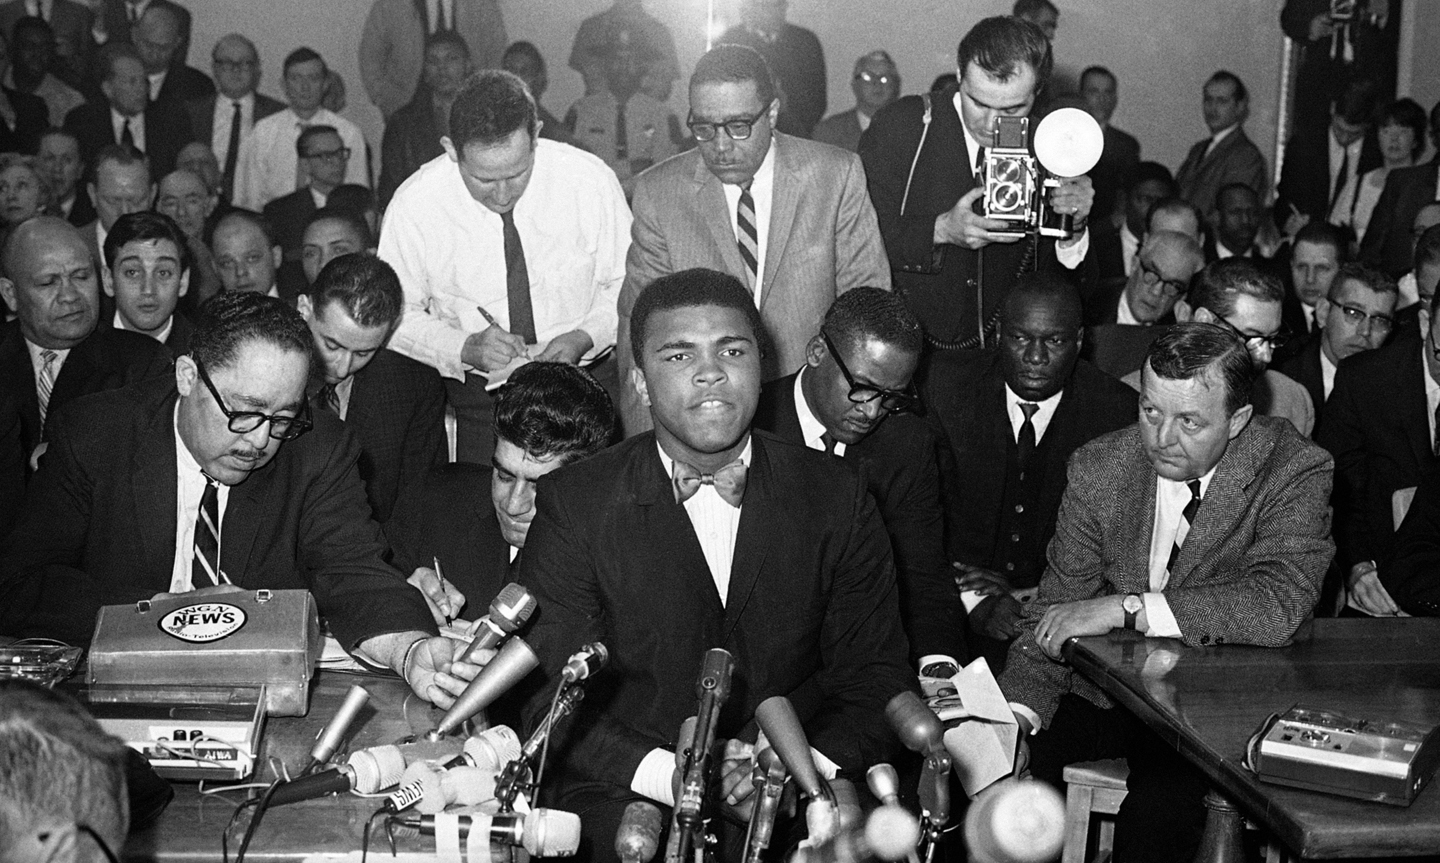 While Illinois Athletic Commission listened, heavyweight champion Muhammad Ali speaks, Feb. 25, 1966 in Chicago. He attended commission meeting as a result of Illinois Gov. Otto Kerner?s request that the commission members reconsider permission for Clay to defend title later this month. Ali had criticized his imminent army draft. (AP Photo)